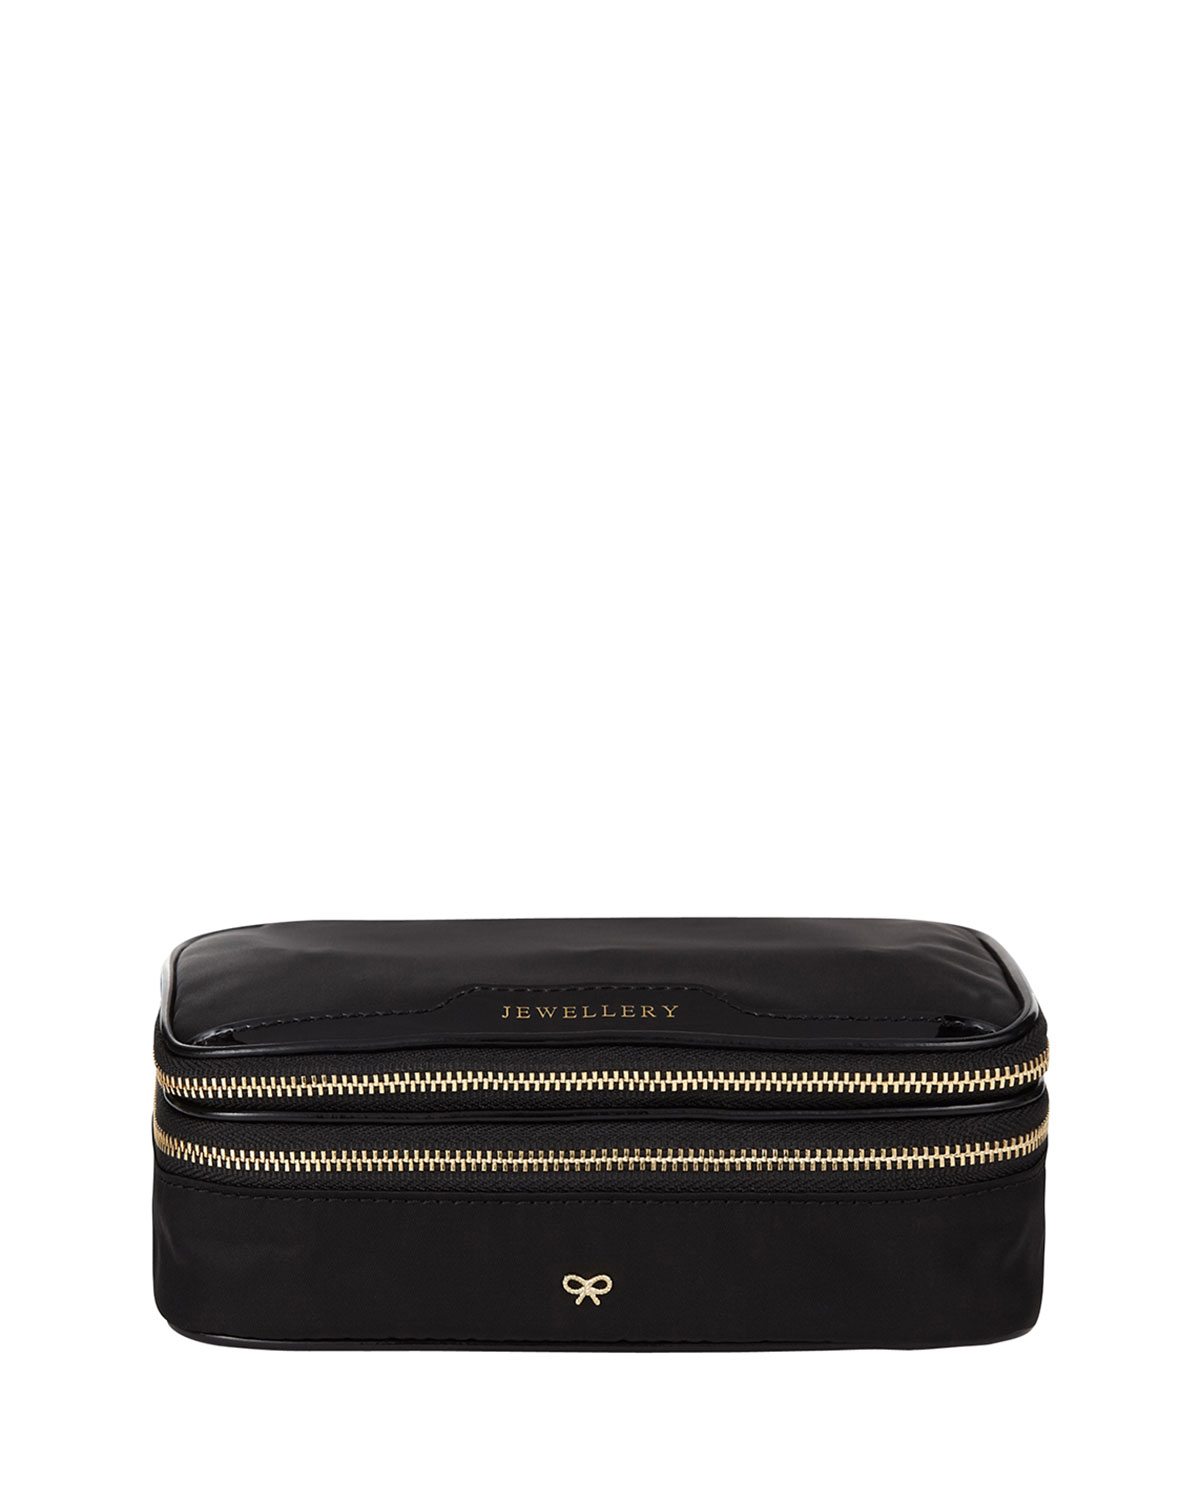 Nylon Jewelry Pouch, Black - Anya Hindmarch